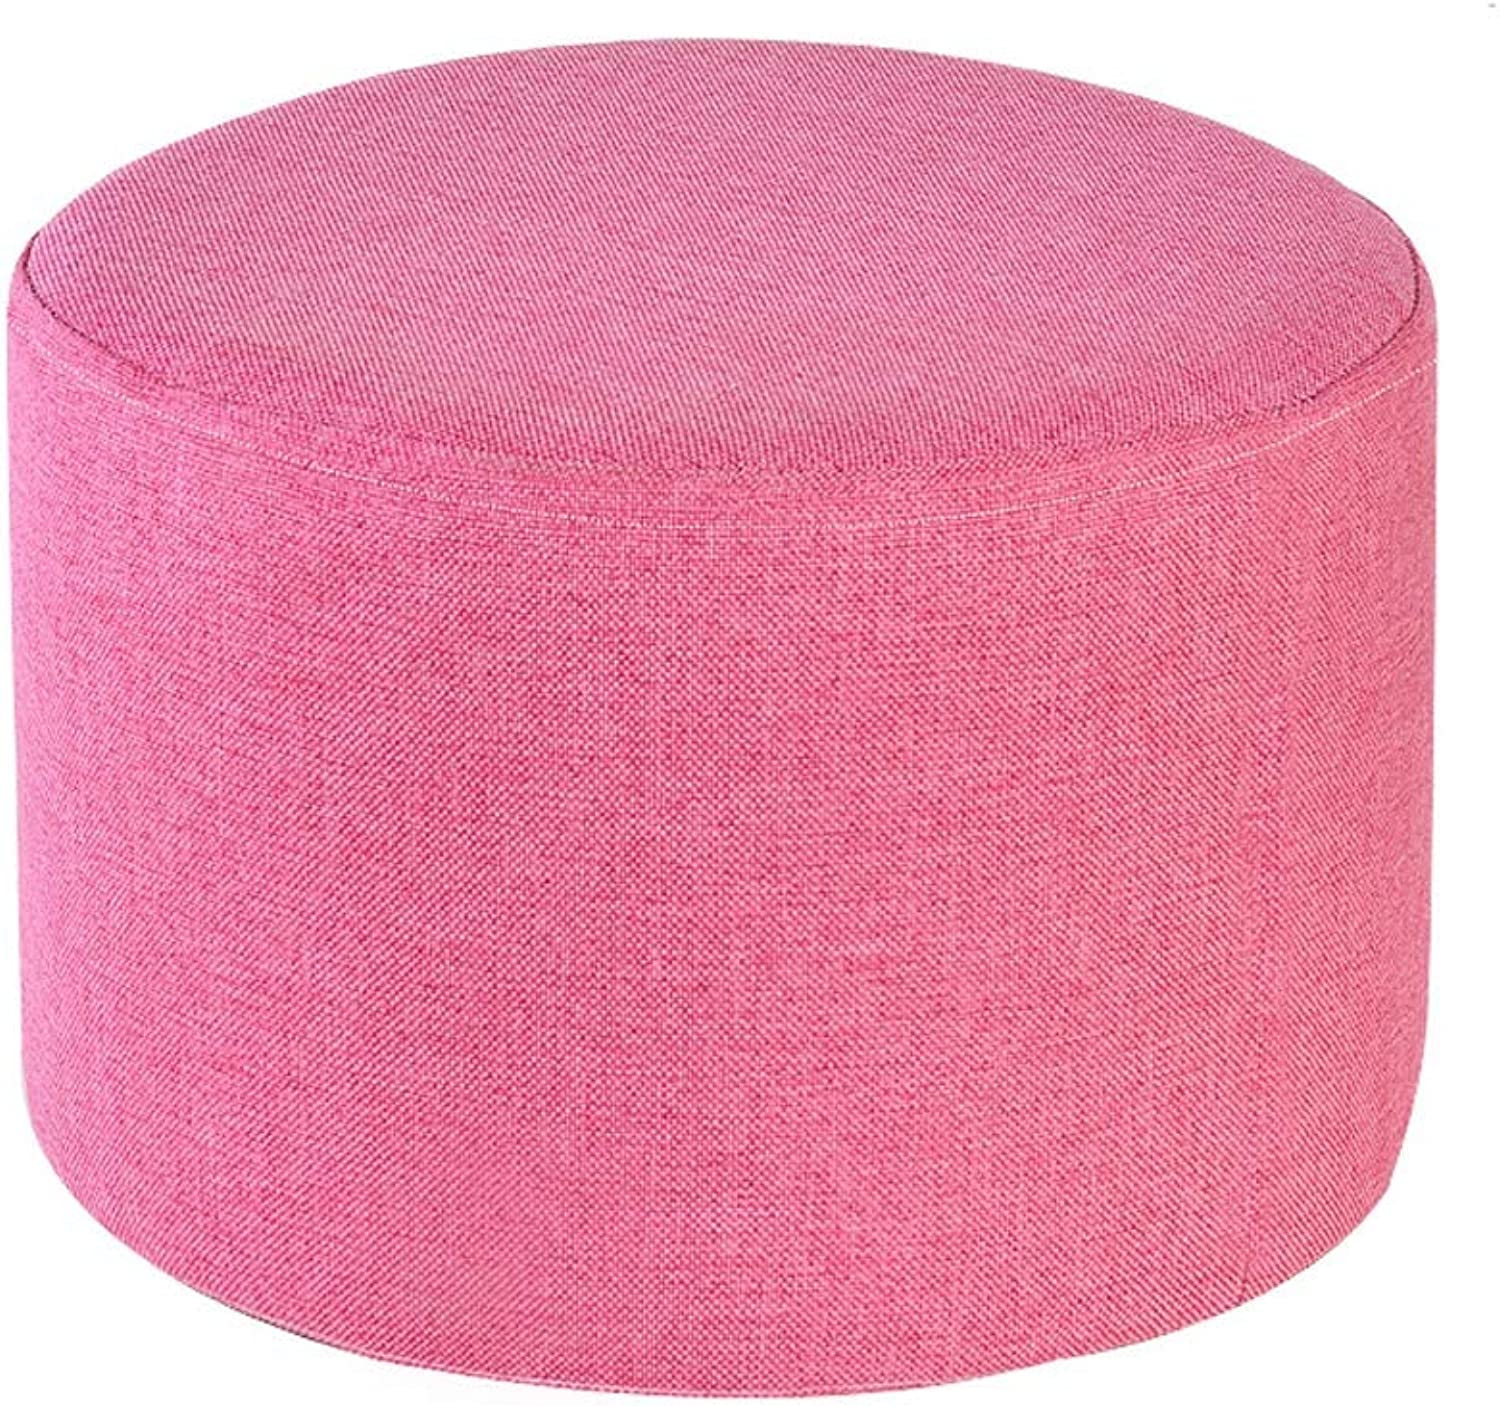 MKKJD Cushion Tatami futon Round Yoga Meditation mat, Cotton Linen Fabric Removable and Washable (color   C)